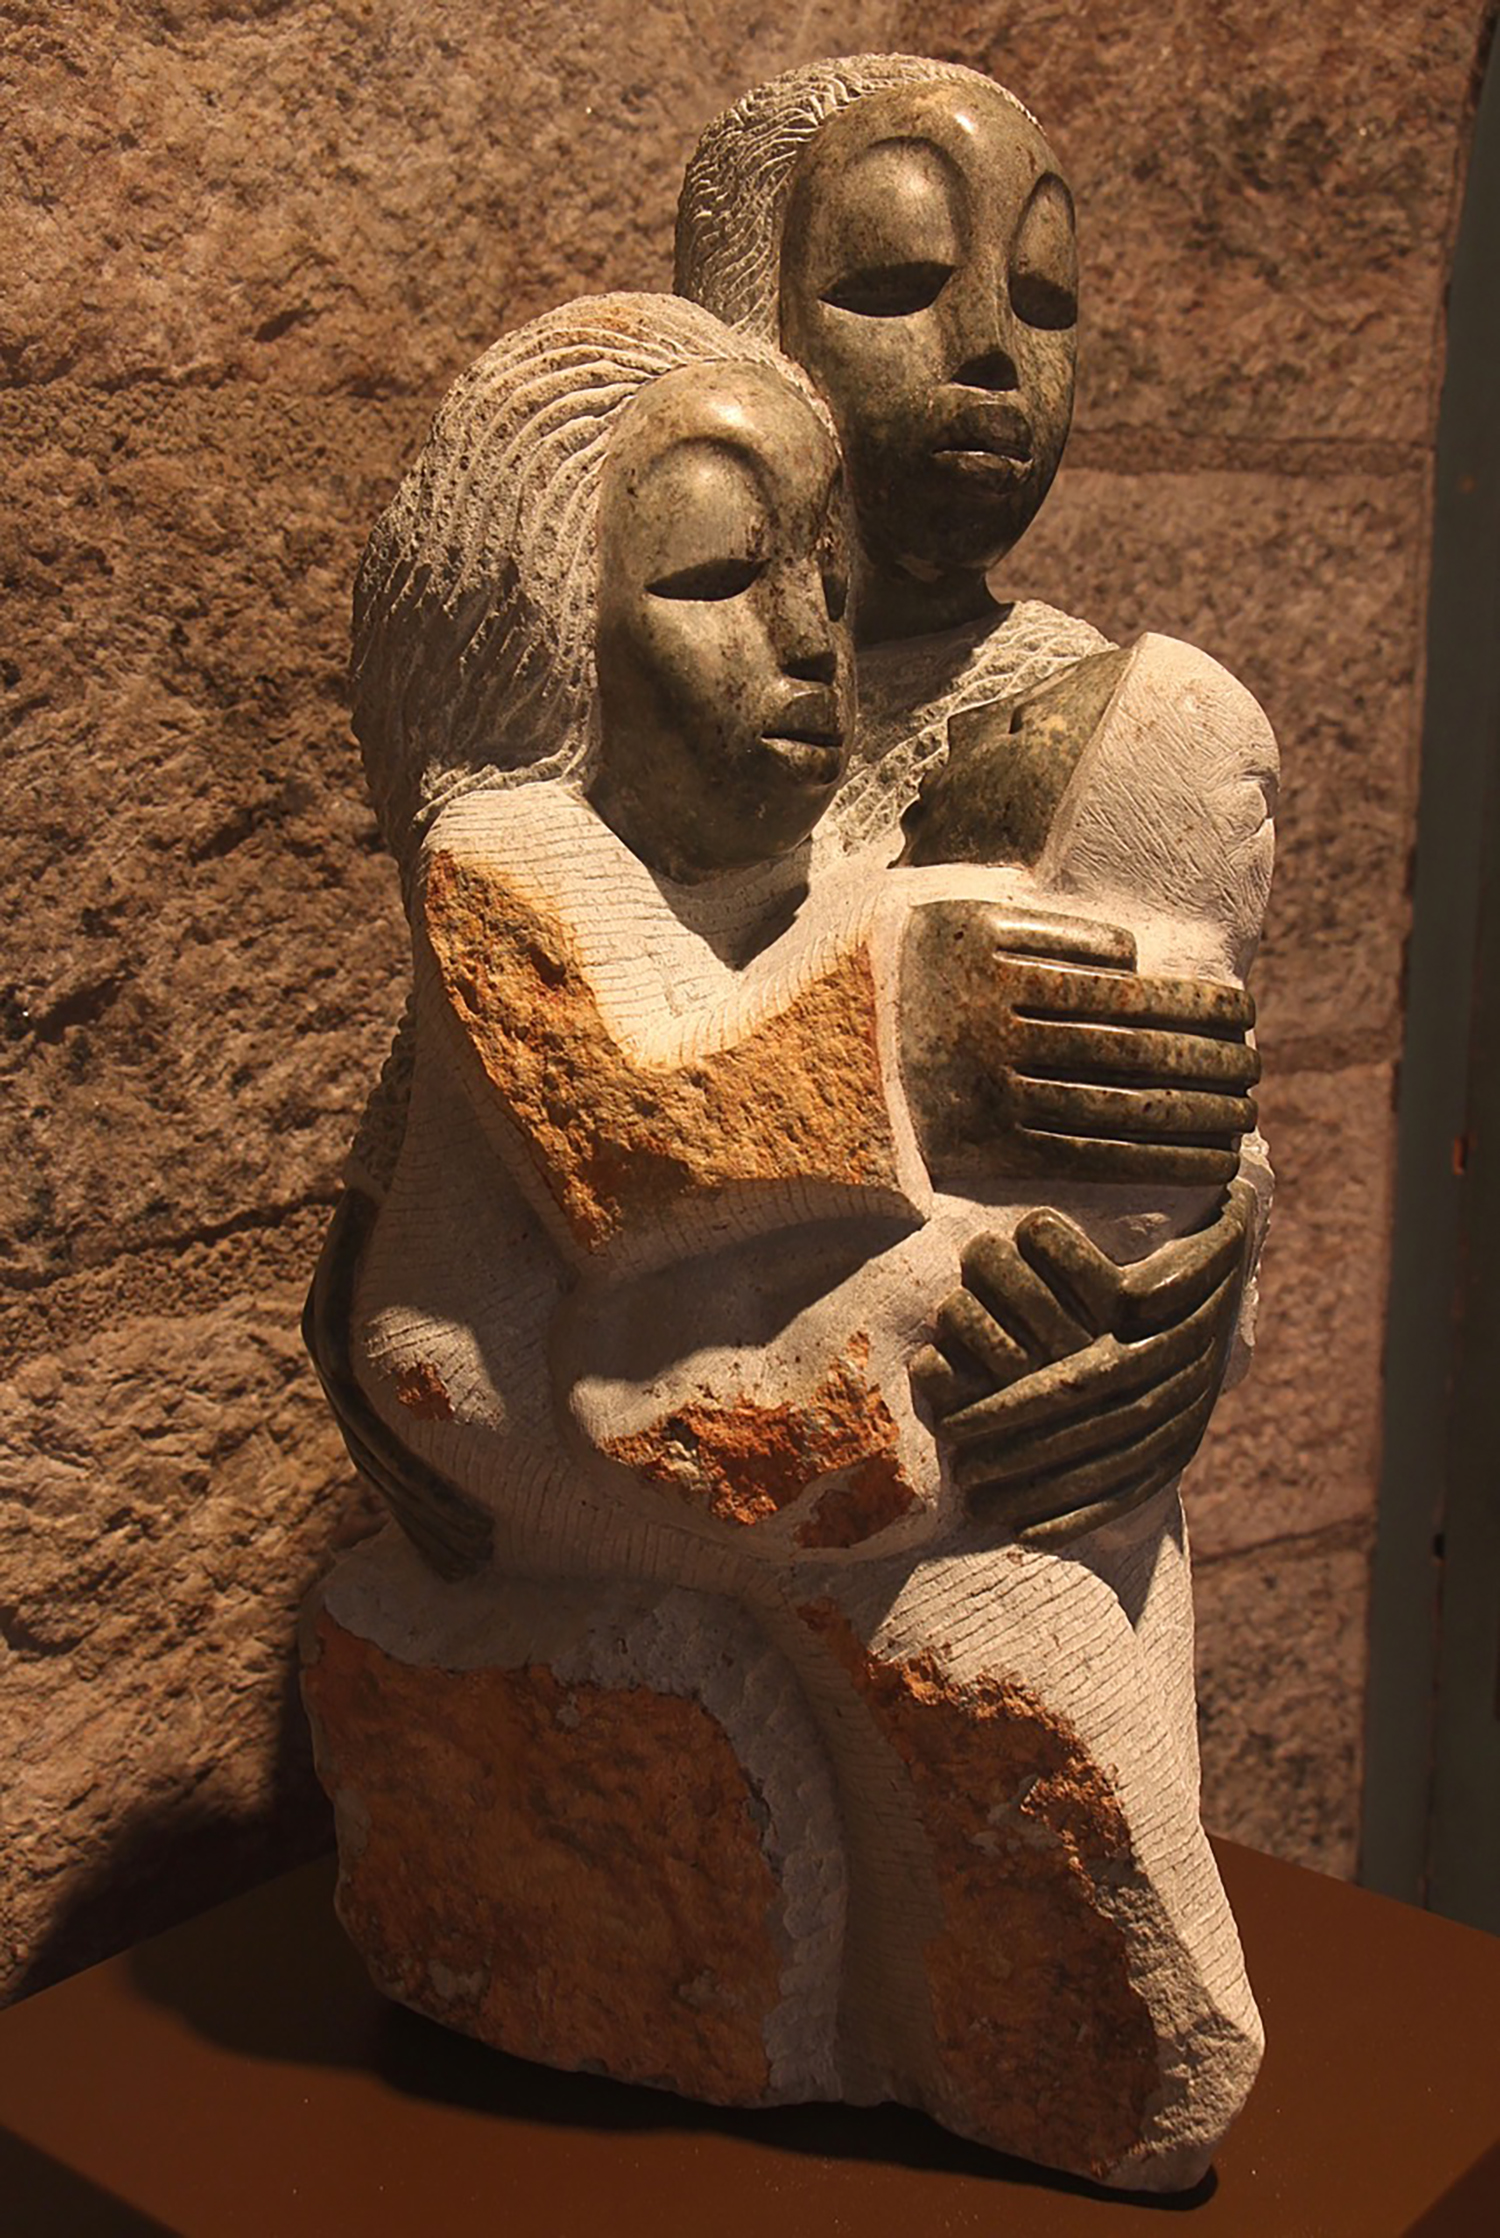 """Figure 5: This representation of the Holy Family was carved by Vernon Nyagweta, a sculptor from Zimbabwe. The stone is a form of serpentine called """"springstone."""" The outer layer is a rich reddish brown, while the interior is a deep greenish color. The faces and hands are waxed and polished, giving the piece a tri-color effect. On loan from the Knights of Columbus Museum, New Haven, Connecticut."""